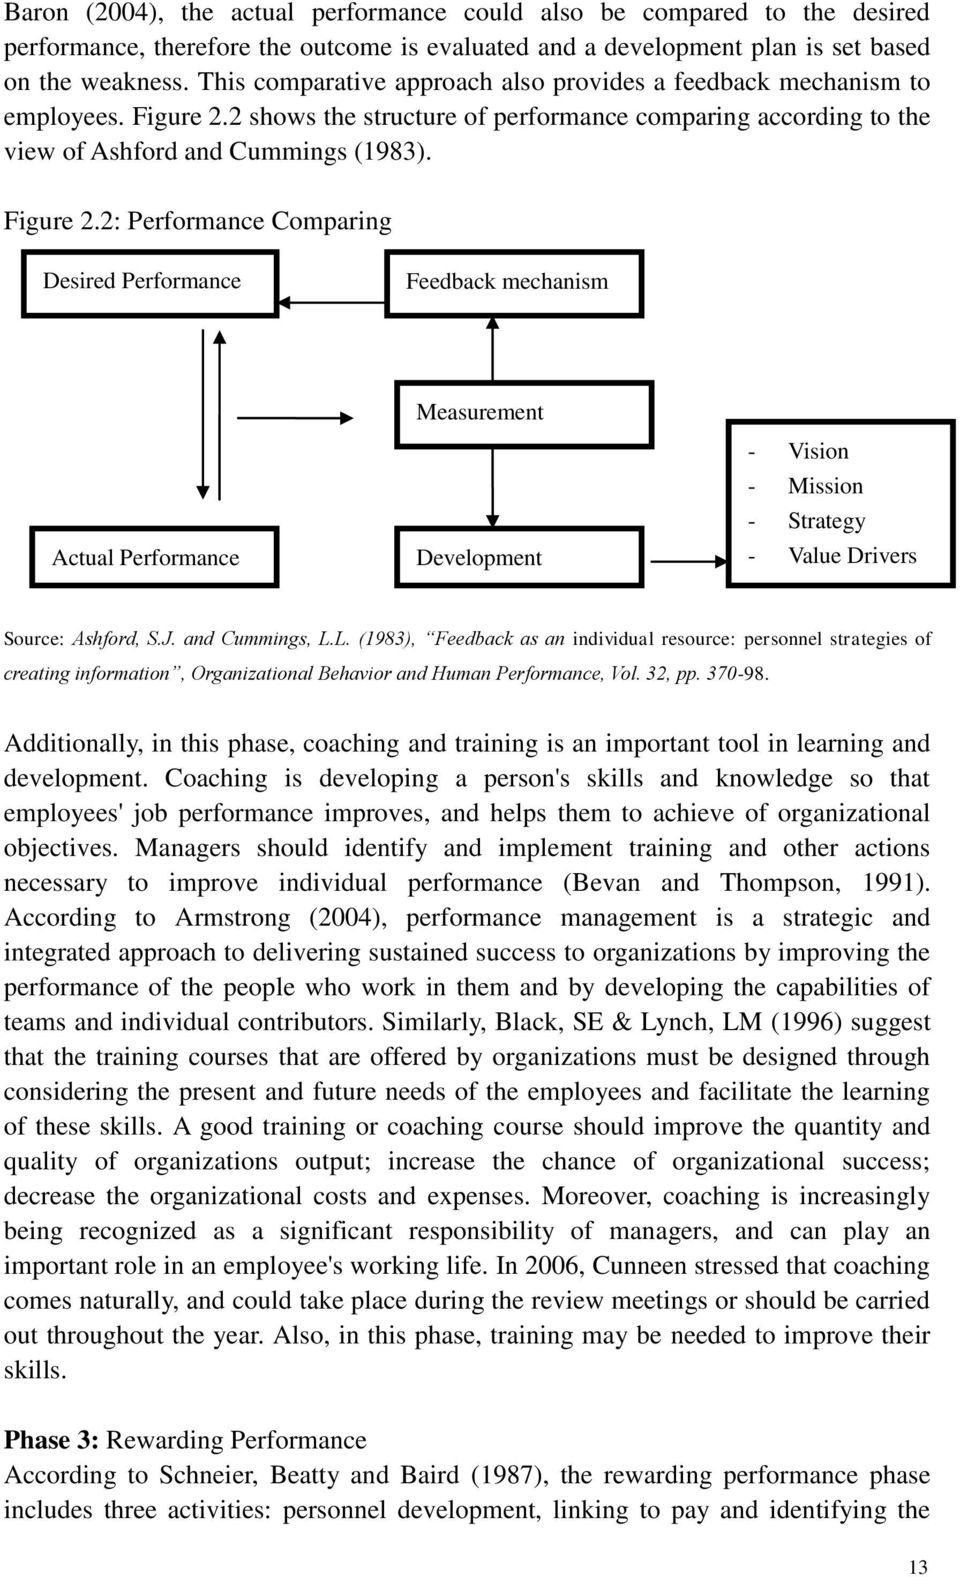 2 shows the structure of performance comparing according to the view of Ashford and Cummings (1983). Figure 2.